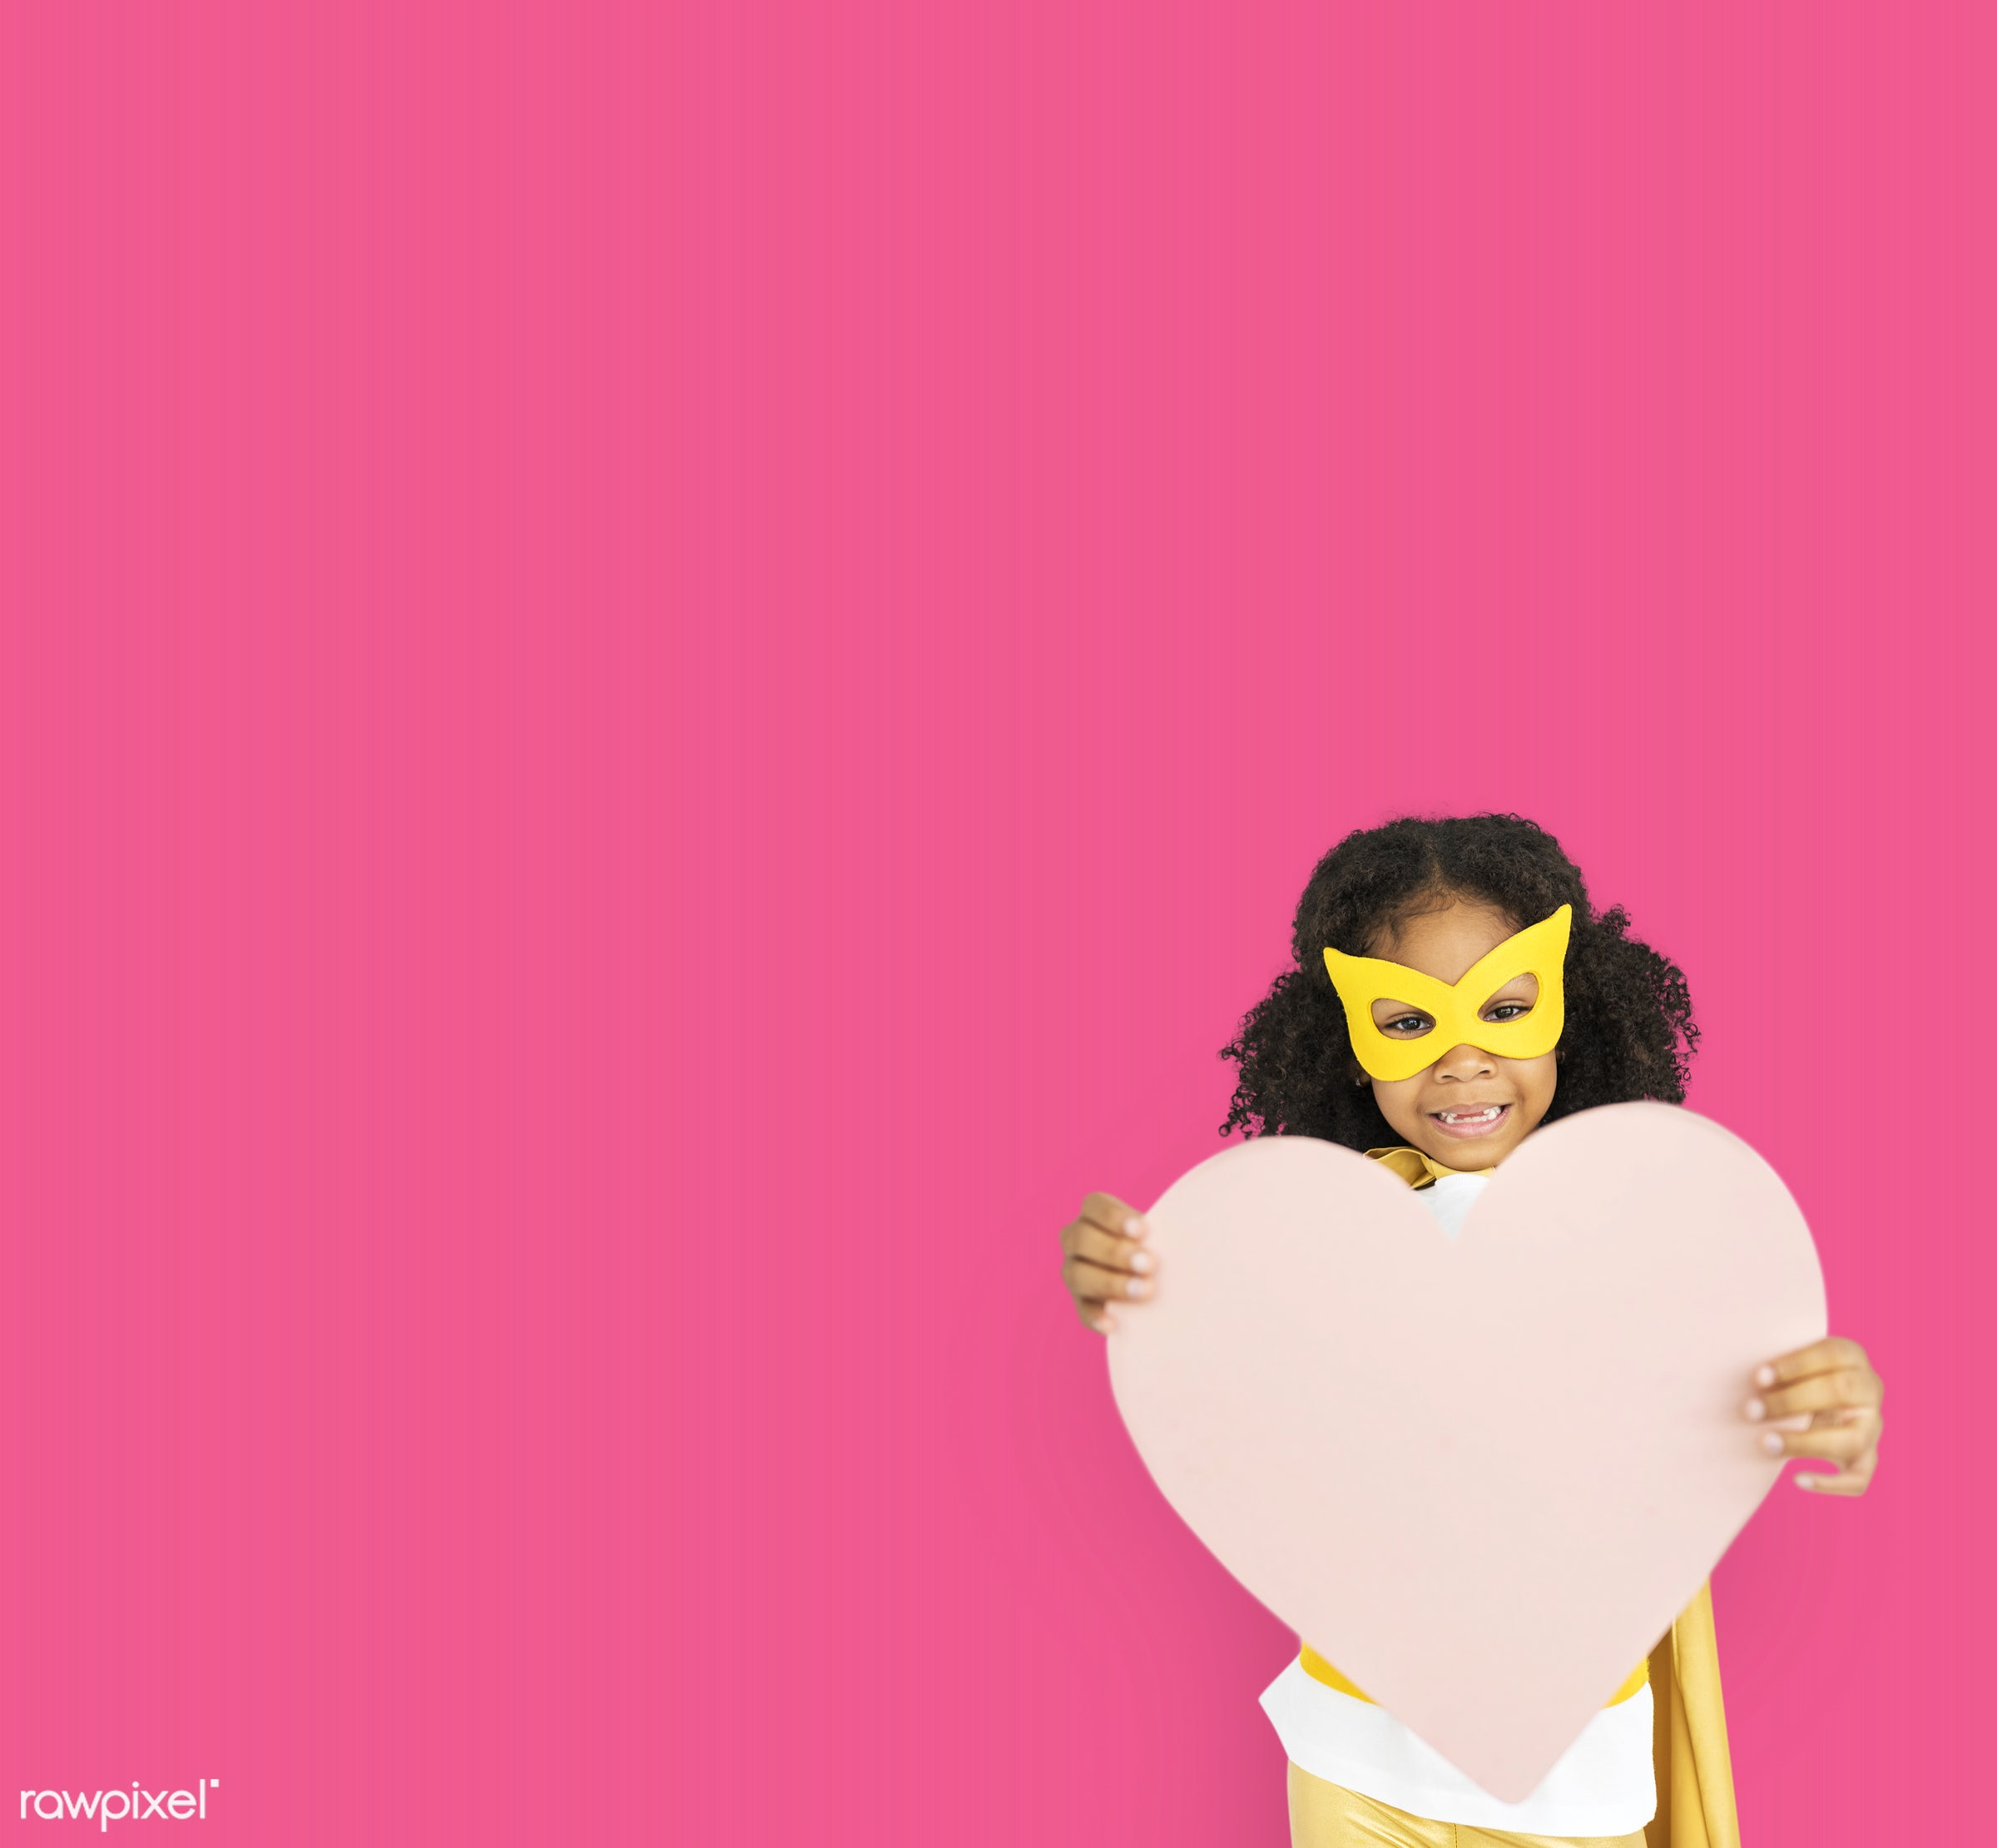 studio, expression, person, holding, mask, people, kid, love, solo, pink, childhood, smile, cheerful, smiling, isolated,...